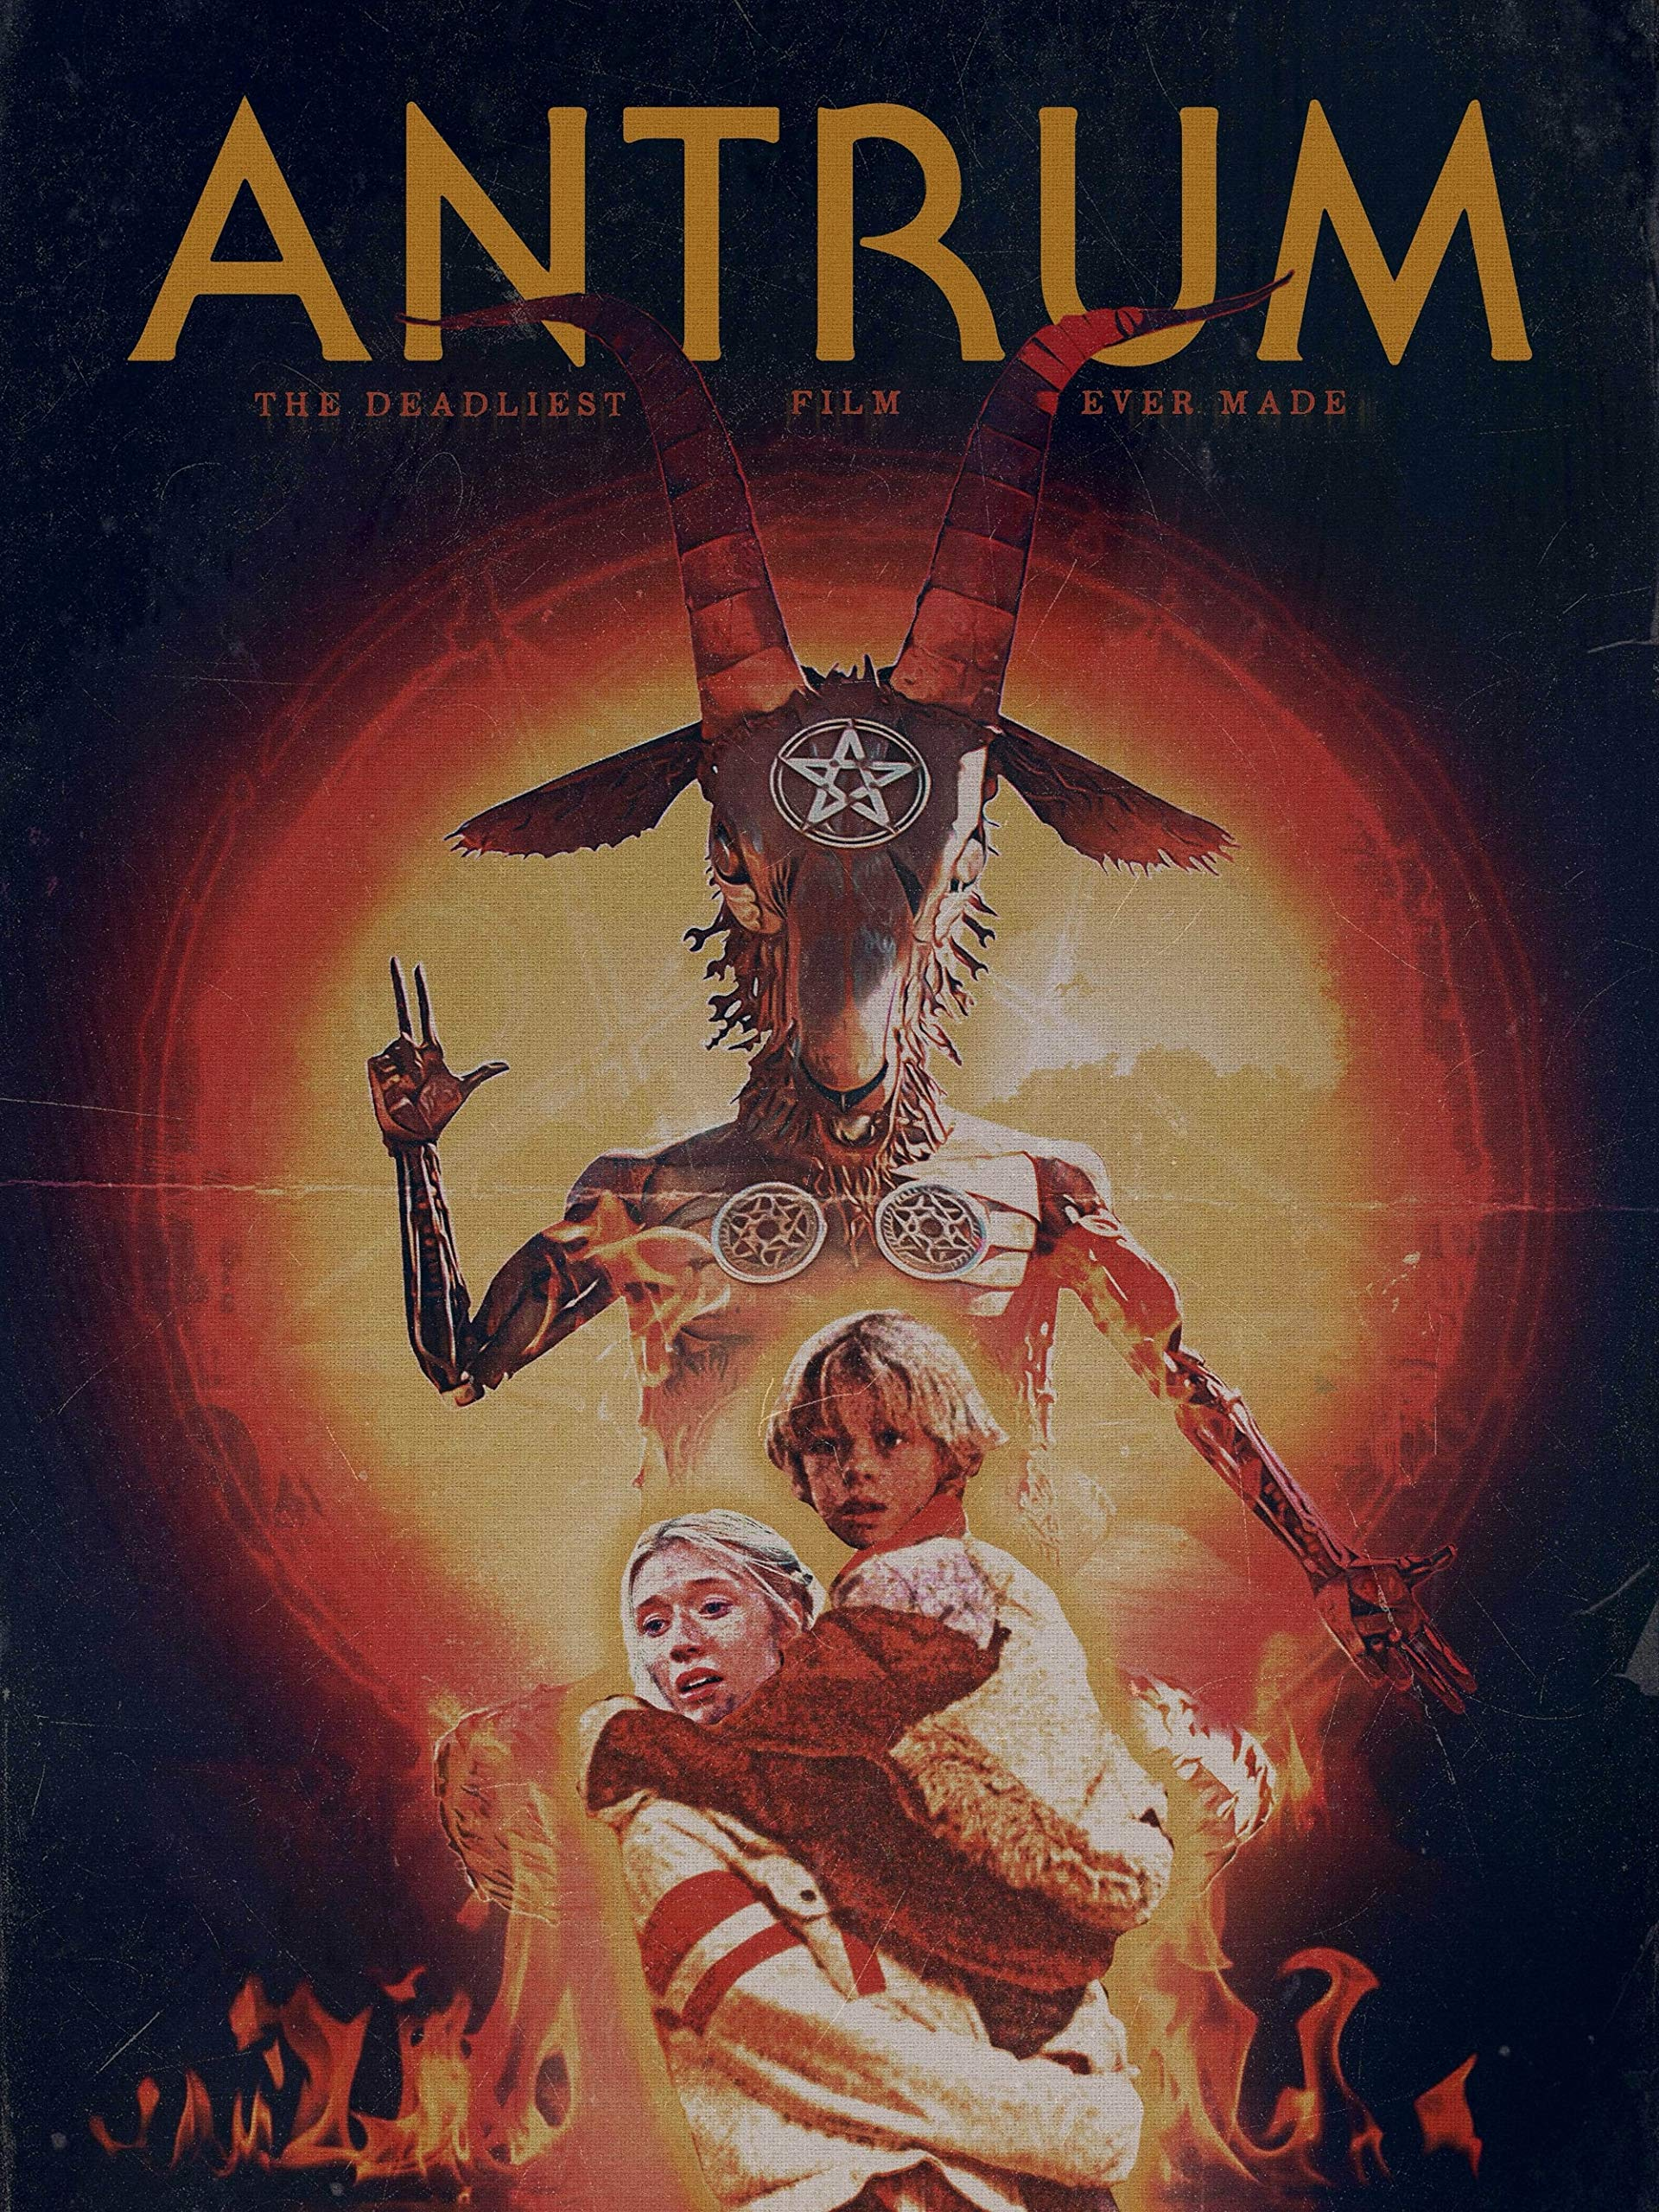 Watch Antrum The Deadliest Film Ever Made Prime Video